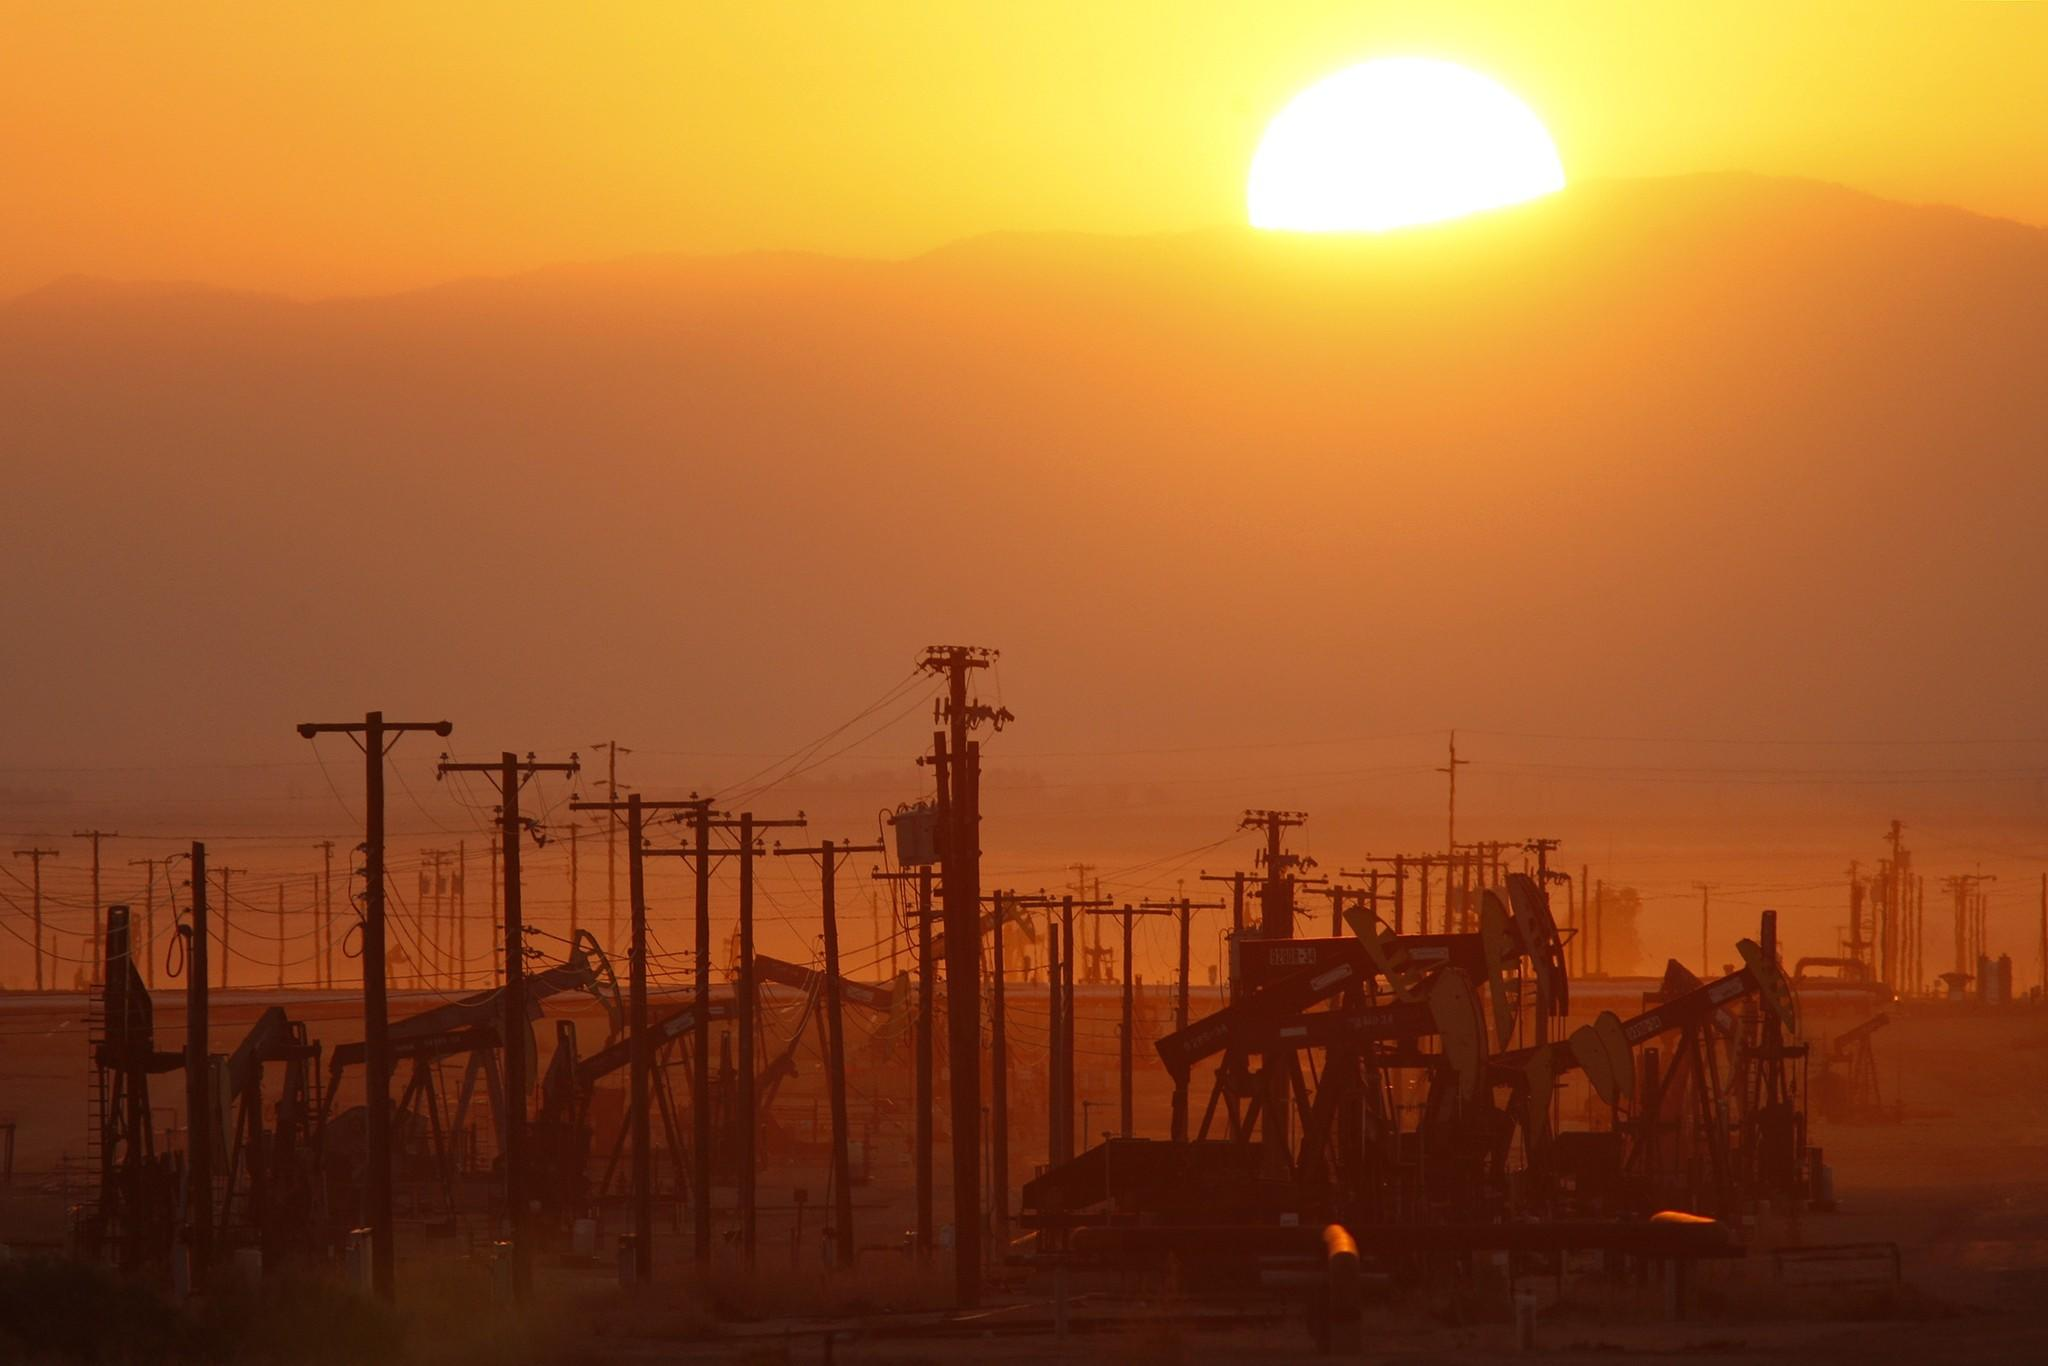 LOST HILLS, CA - MARCH 24: The sun rises over an oil field over the Monterey Shale formation where gas and oil extraction using hydraulic fracturing, or fracking, is on the verge of a boom on March 24, 2014 near Lost Hills, California. Critics of fracking in California cite concerns over water usage and possible chemical pollution of ground water sources as California farmers are forced to leave unprecedented expanses of fields fallow in one of the worst droughts in California history. Concerns also include the possibility of earthquakes triggered by the fracking process which injects water, sand and various chemicals under high pressure into the ground to break the rock to release oil and gas for extraction though a well. The 800-mile-long San Andreas Fault runs north and south on the western side of the Monterey Formation in the Central Valley and is thought to be the most dangerous fault in the nation. Proponents of the fracking boom saying that the expansion of petroleum extraction is good for the economy and security by developing more domestic energy sources and increasing gas and oil exports.